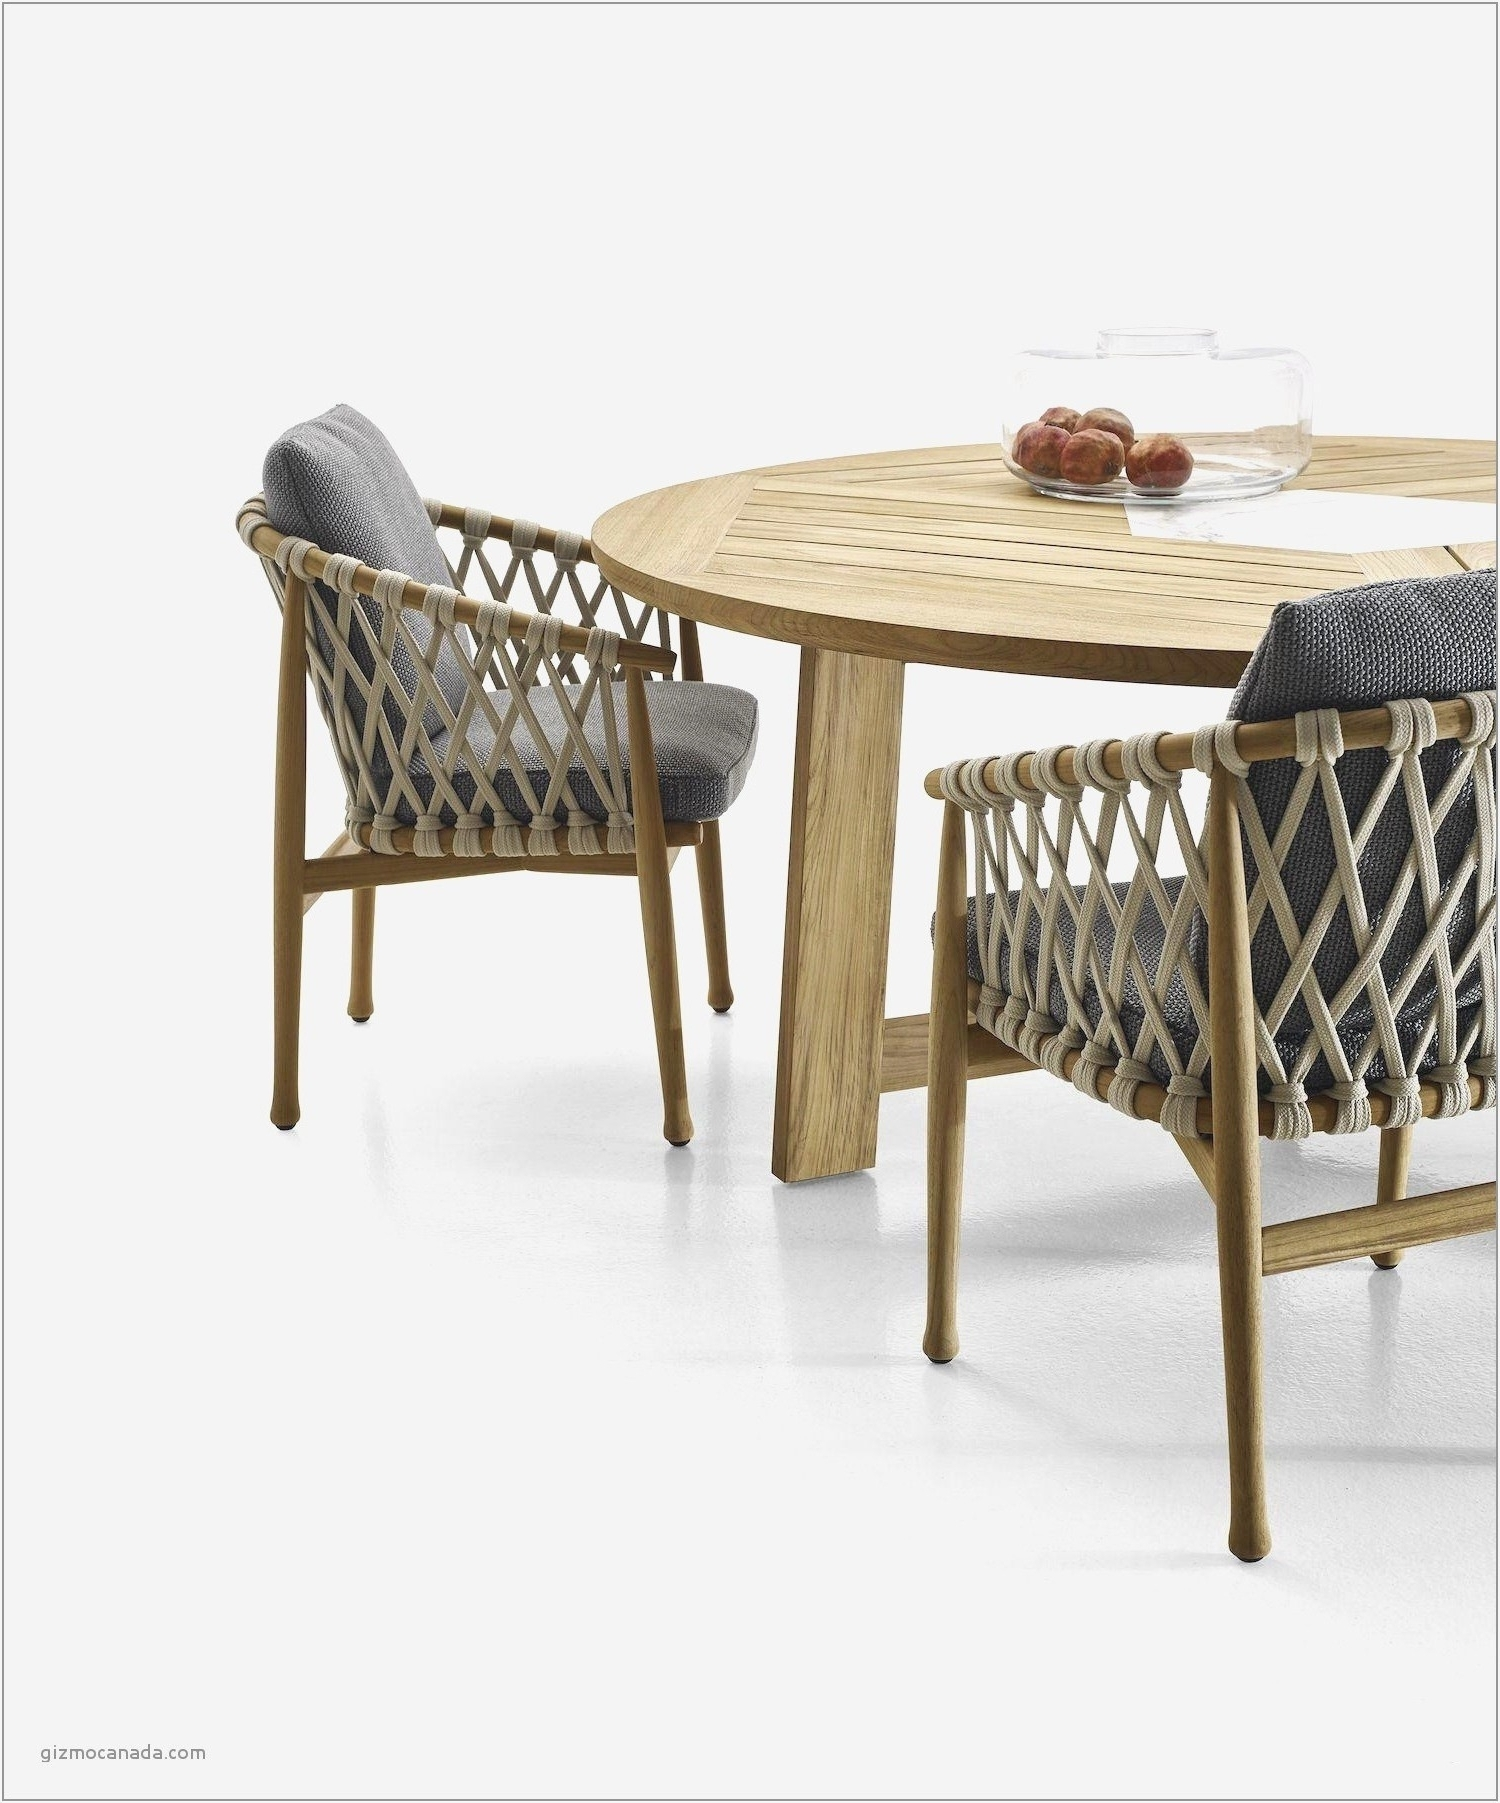 Extendable Dining Room Tables And Chairs With Regard To Most Up To Date Dining Room Table Sets With Bench Fresh News Narrow Extendable (View 14 of 25)